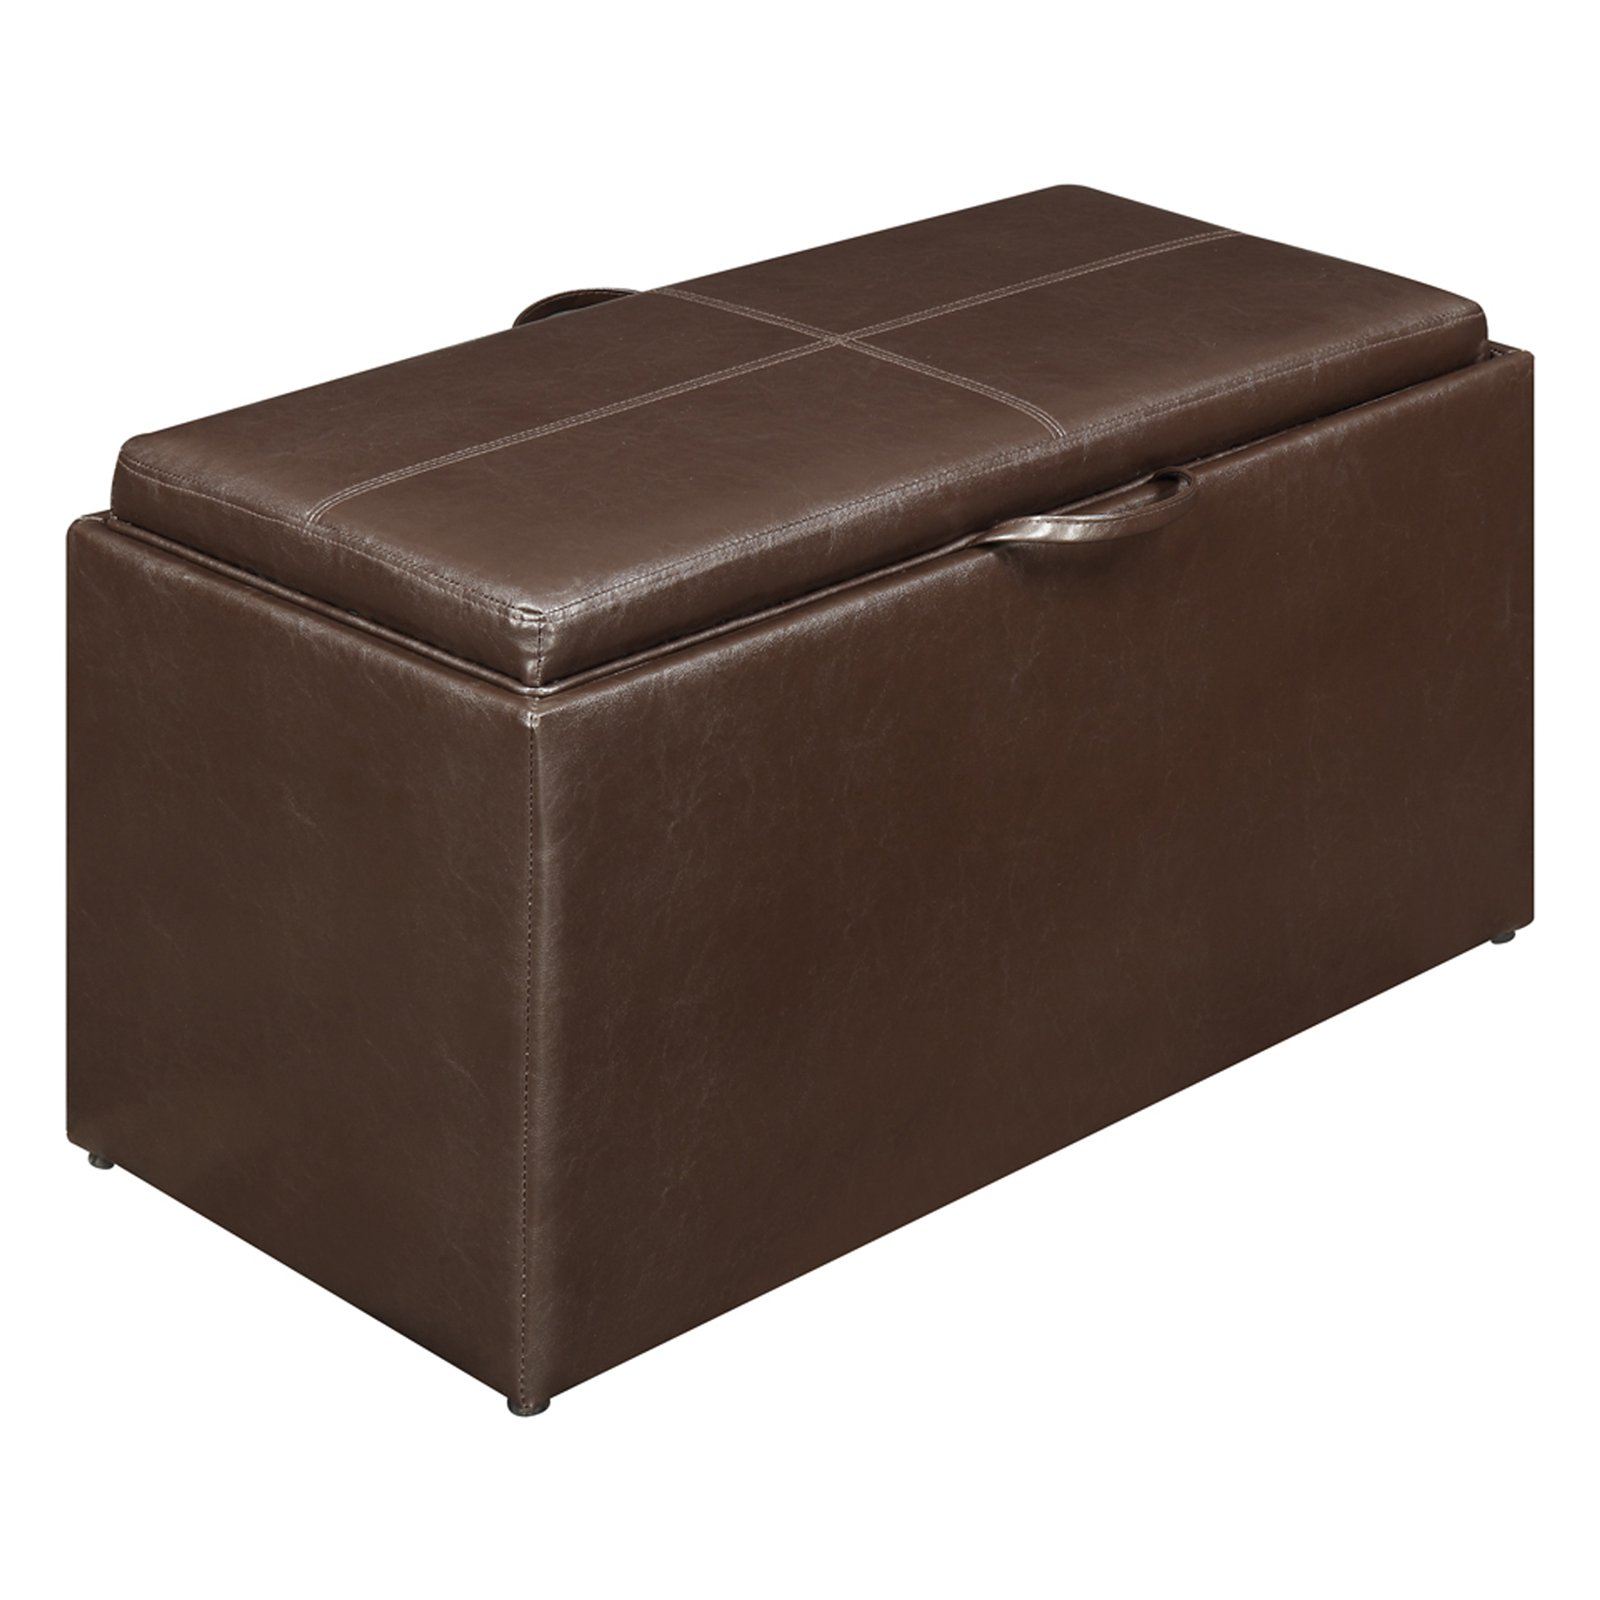 Designs4Comfort Faux Leather Storage Bench with 4 Collapsible Ottomans, Espresso